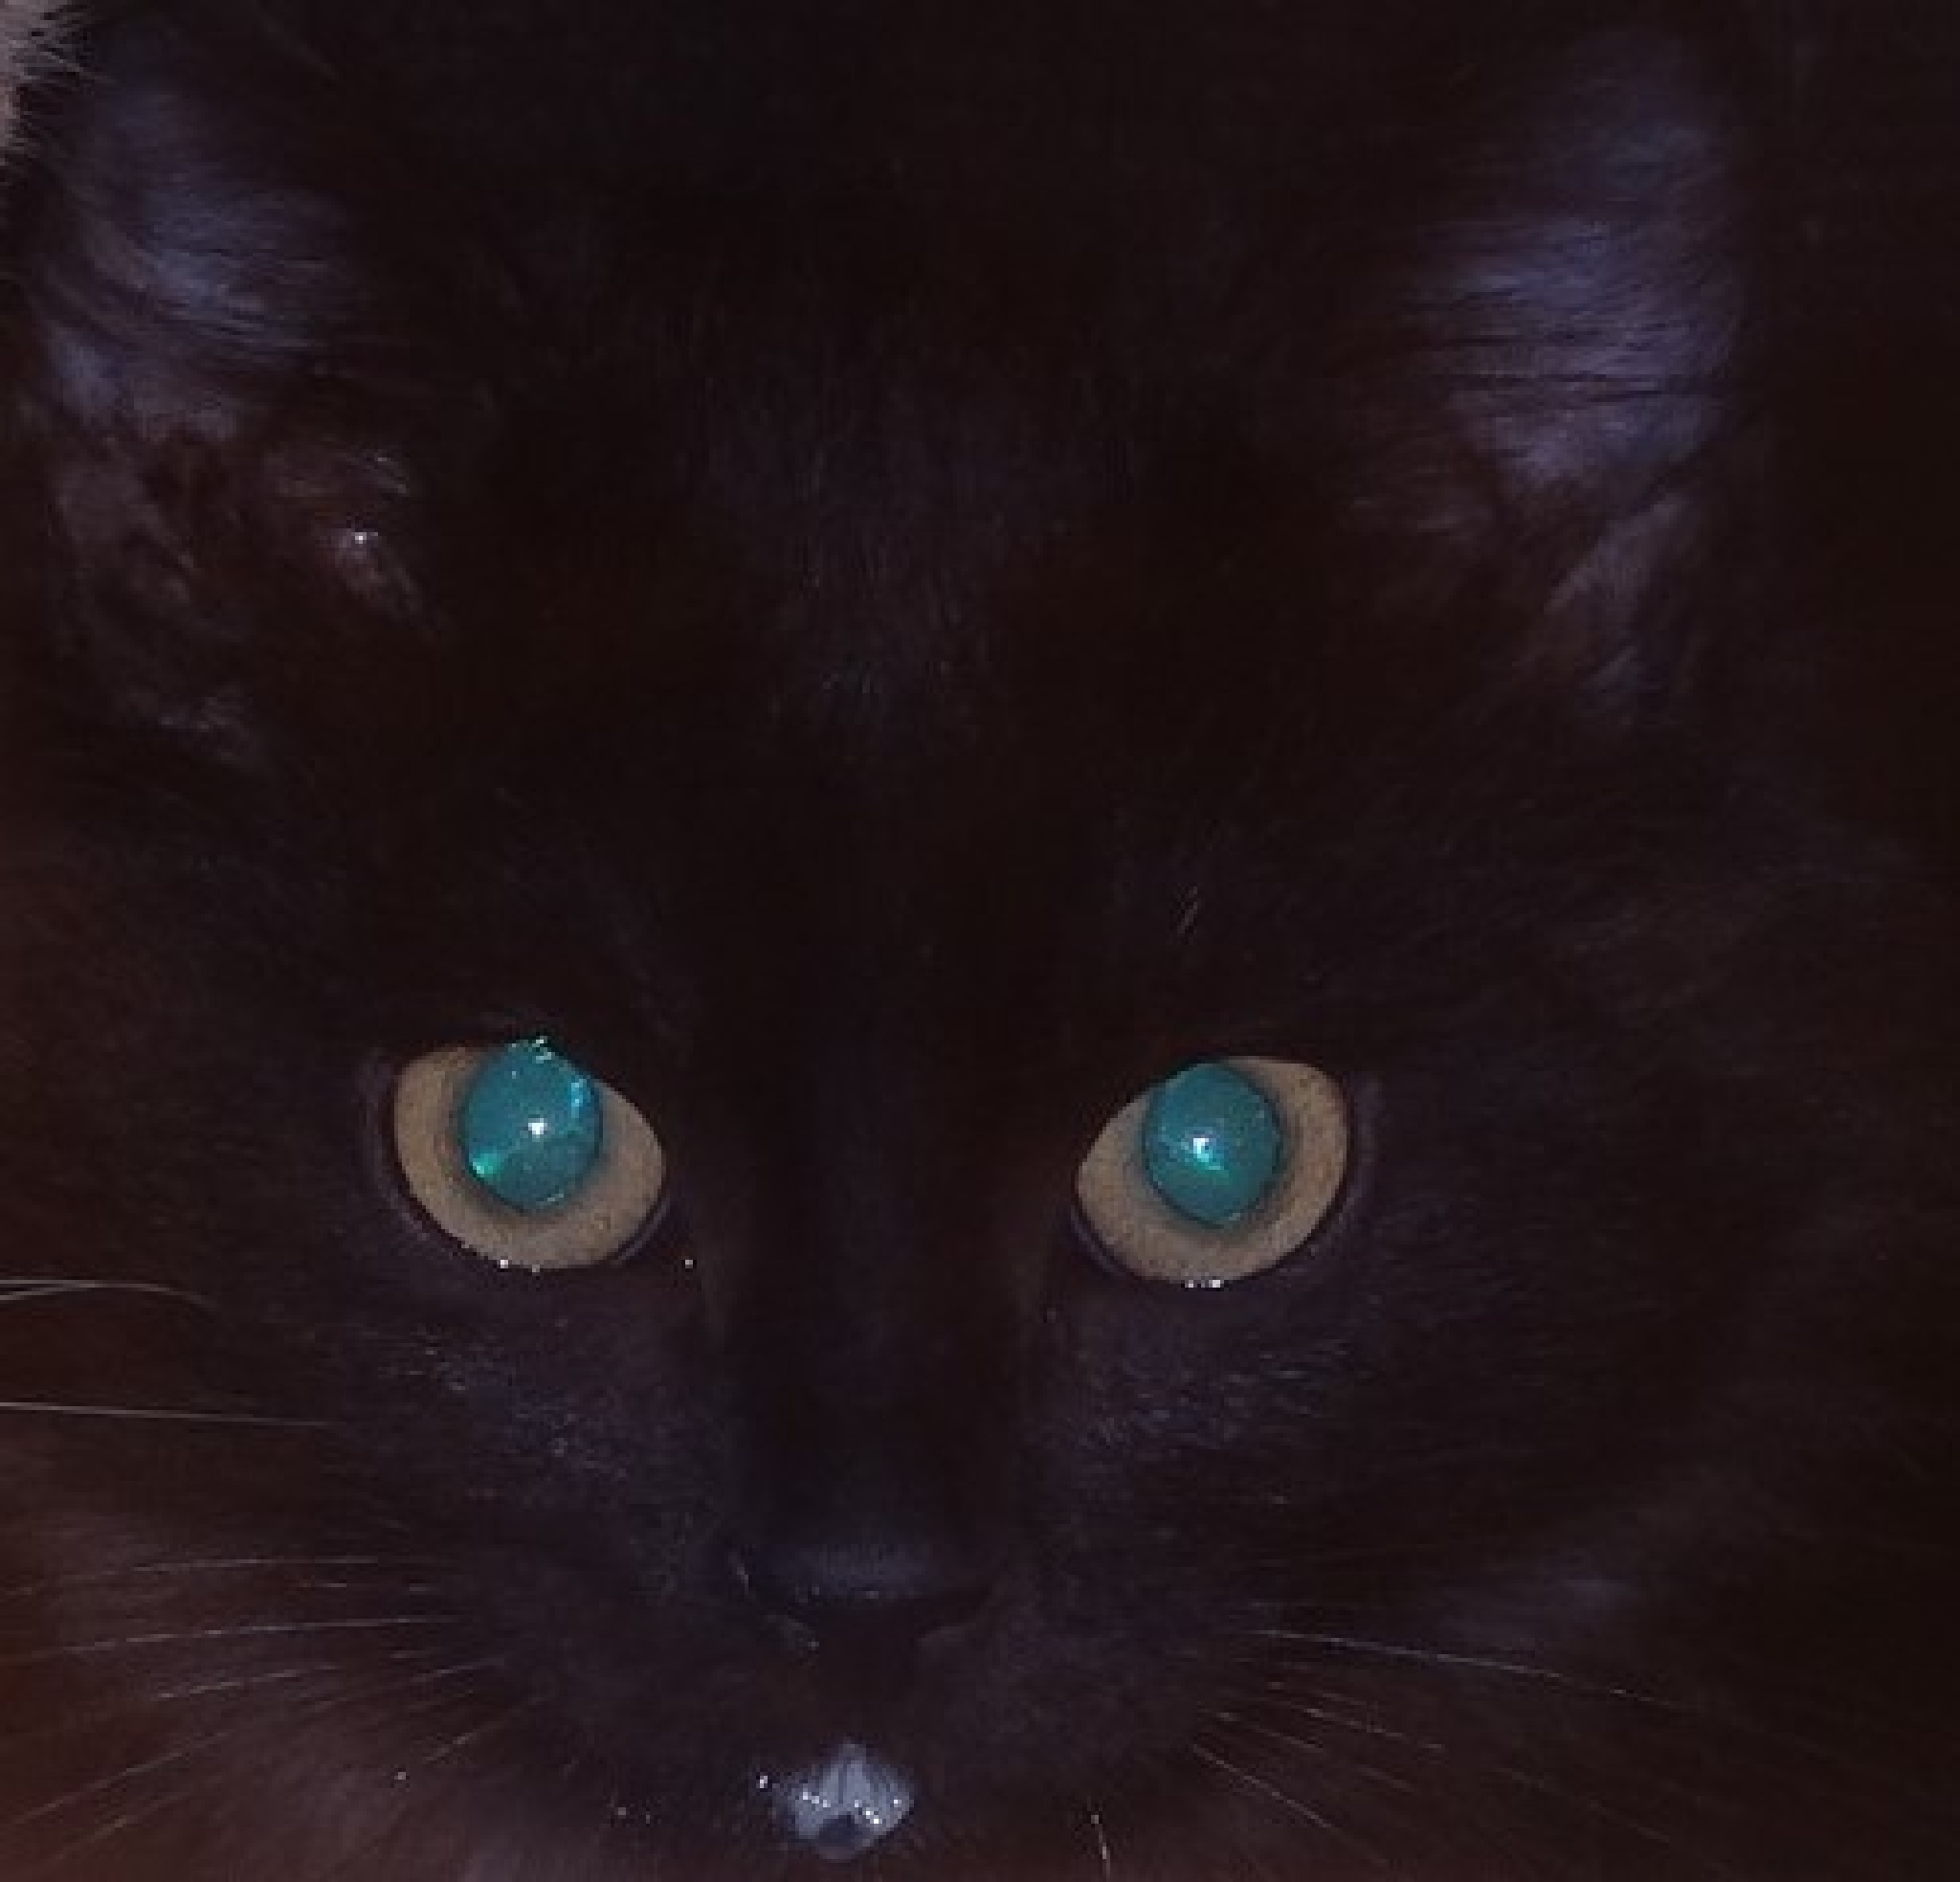 Focus on the kitten's eyes at night by Francine Waterman